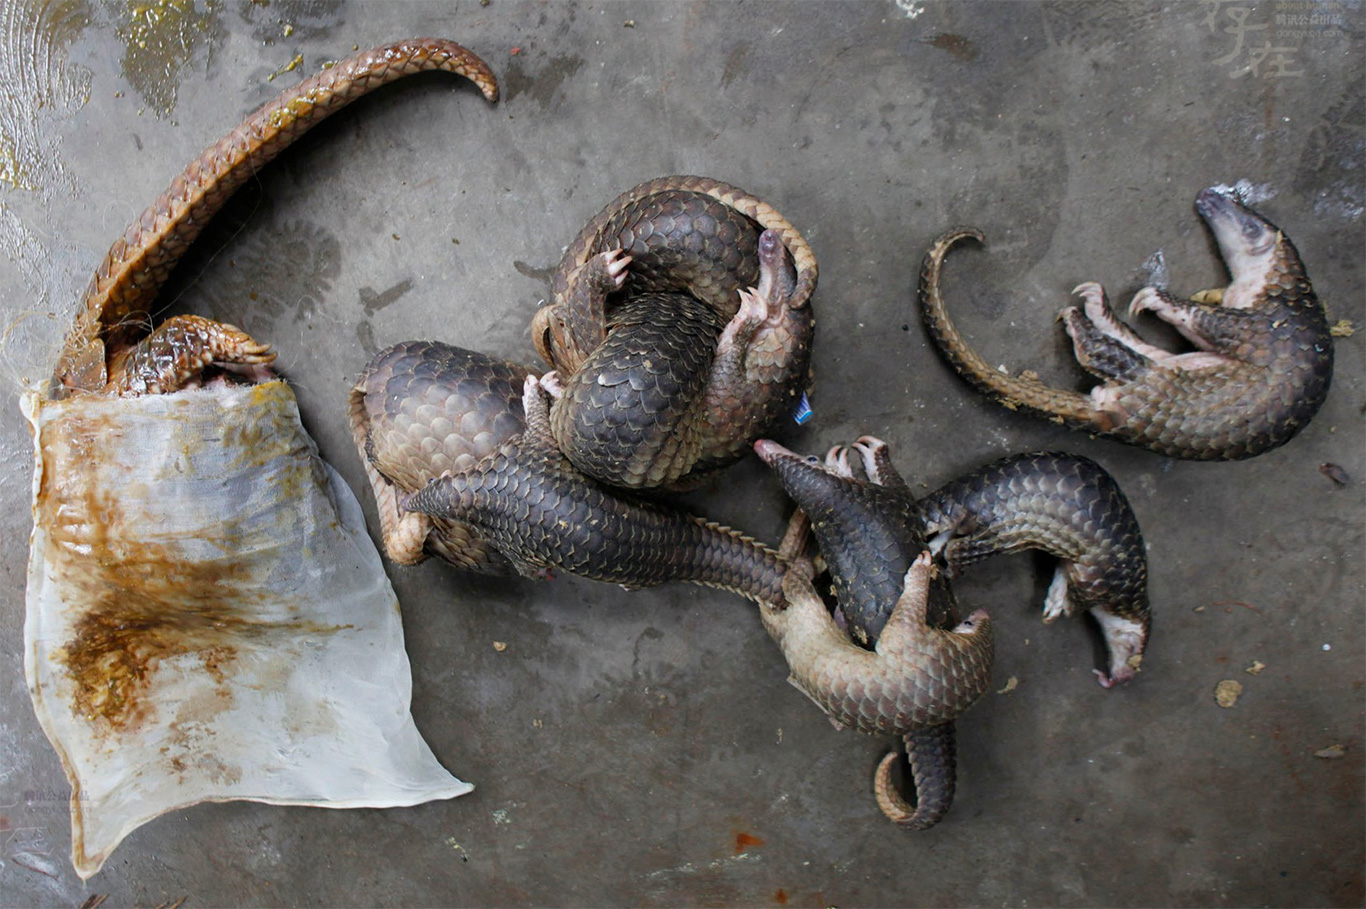 Pangolin purgatory! Chopped, diced and eaten to extinction! 1